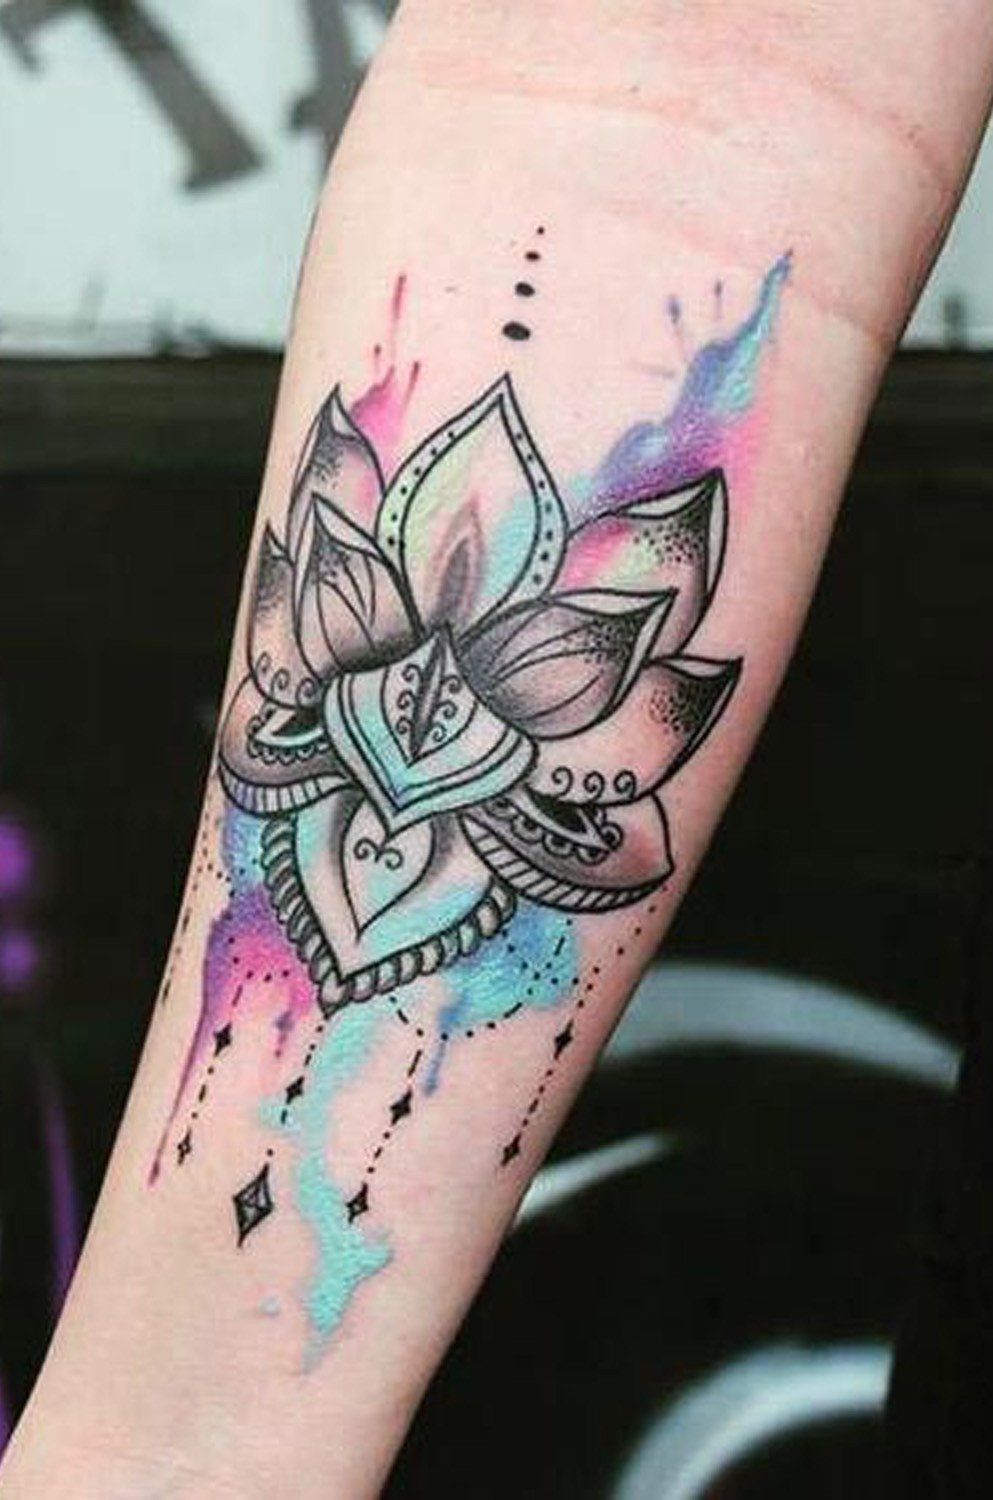 Small Wrist Lotus Flower Tattoo Designs: Watercolor Lotus Flower Wrist Tattoo Ideas For Women At